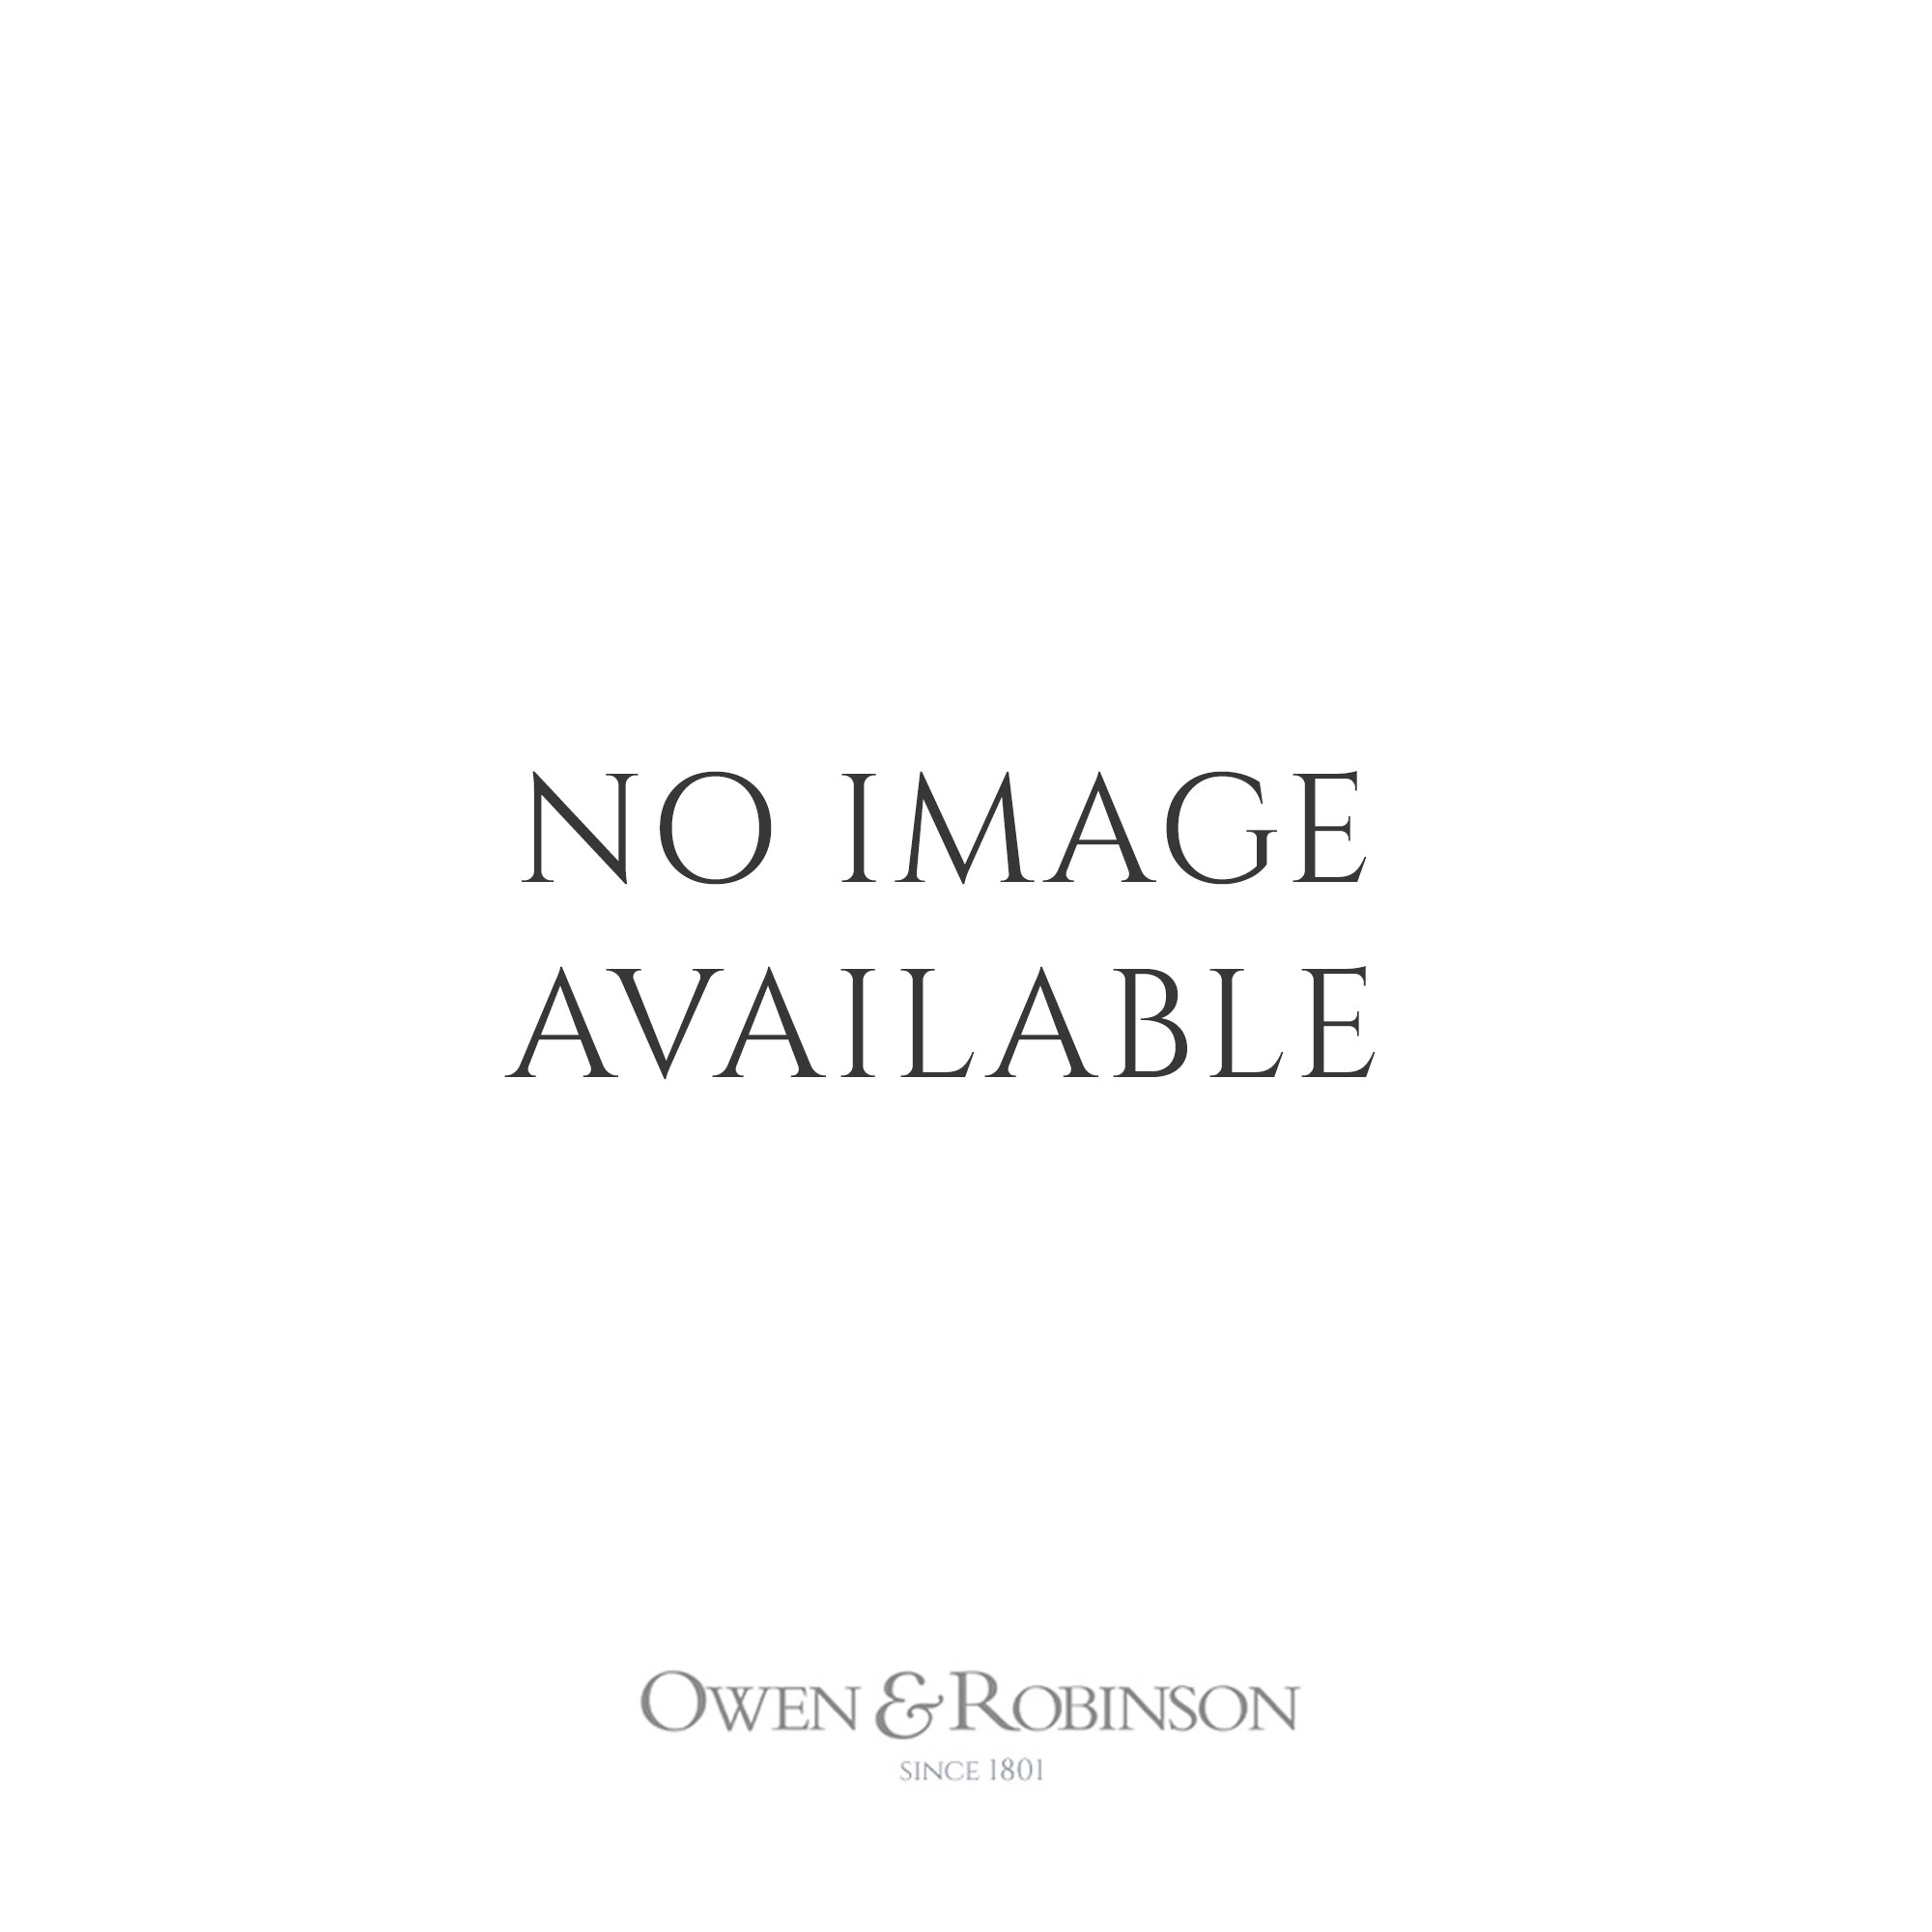 14424803234 TISSOT Tradition Automatic Open Heart Black Dial Watch at O R Leeds